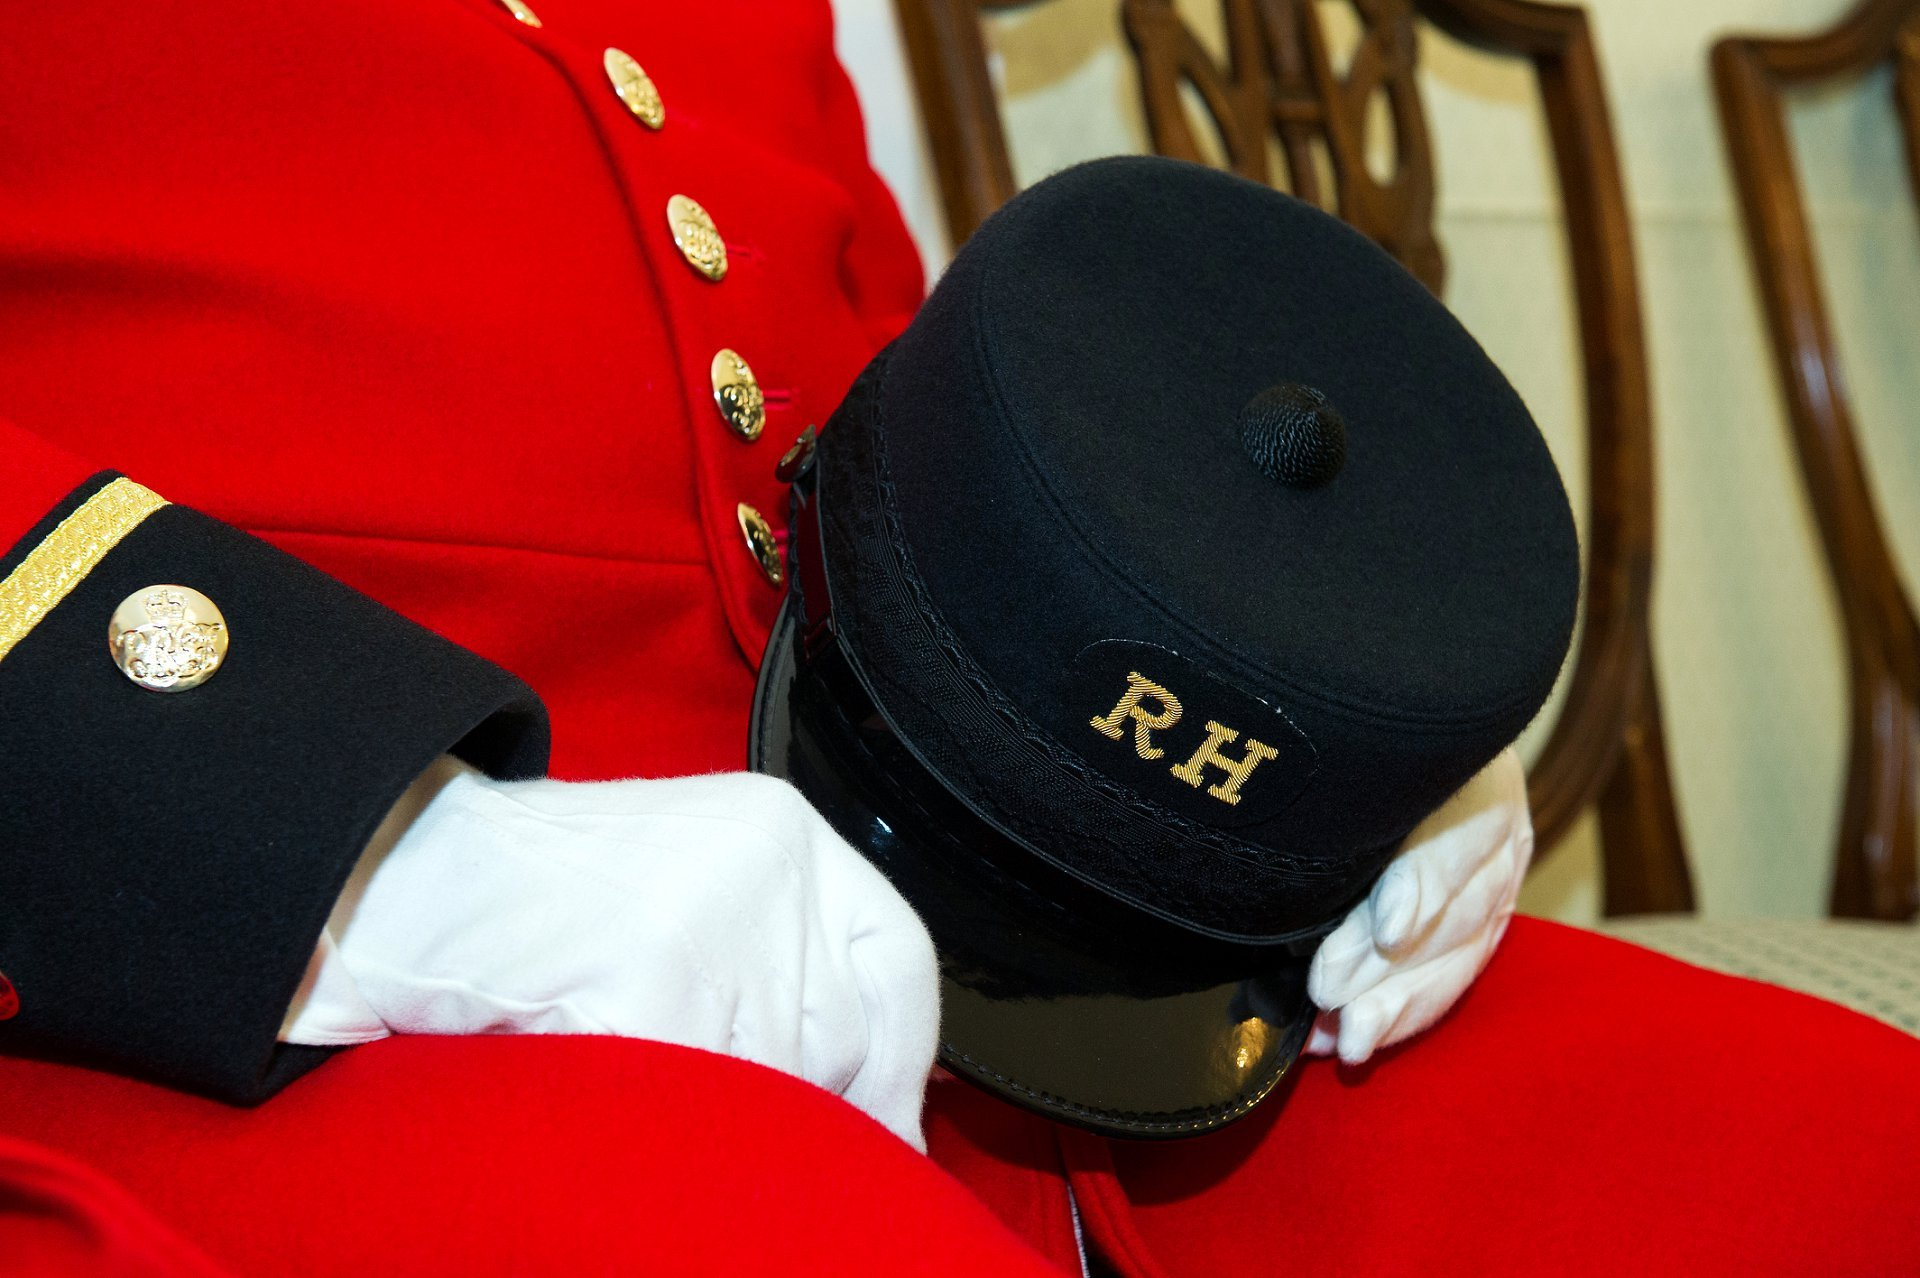 a chelsea pensioners hat with the royal hospital insignia - chelsea pensioners chelsea register office